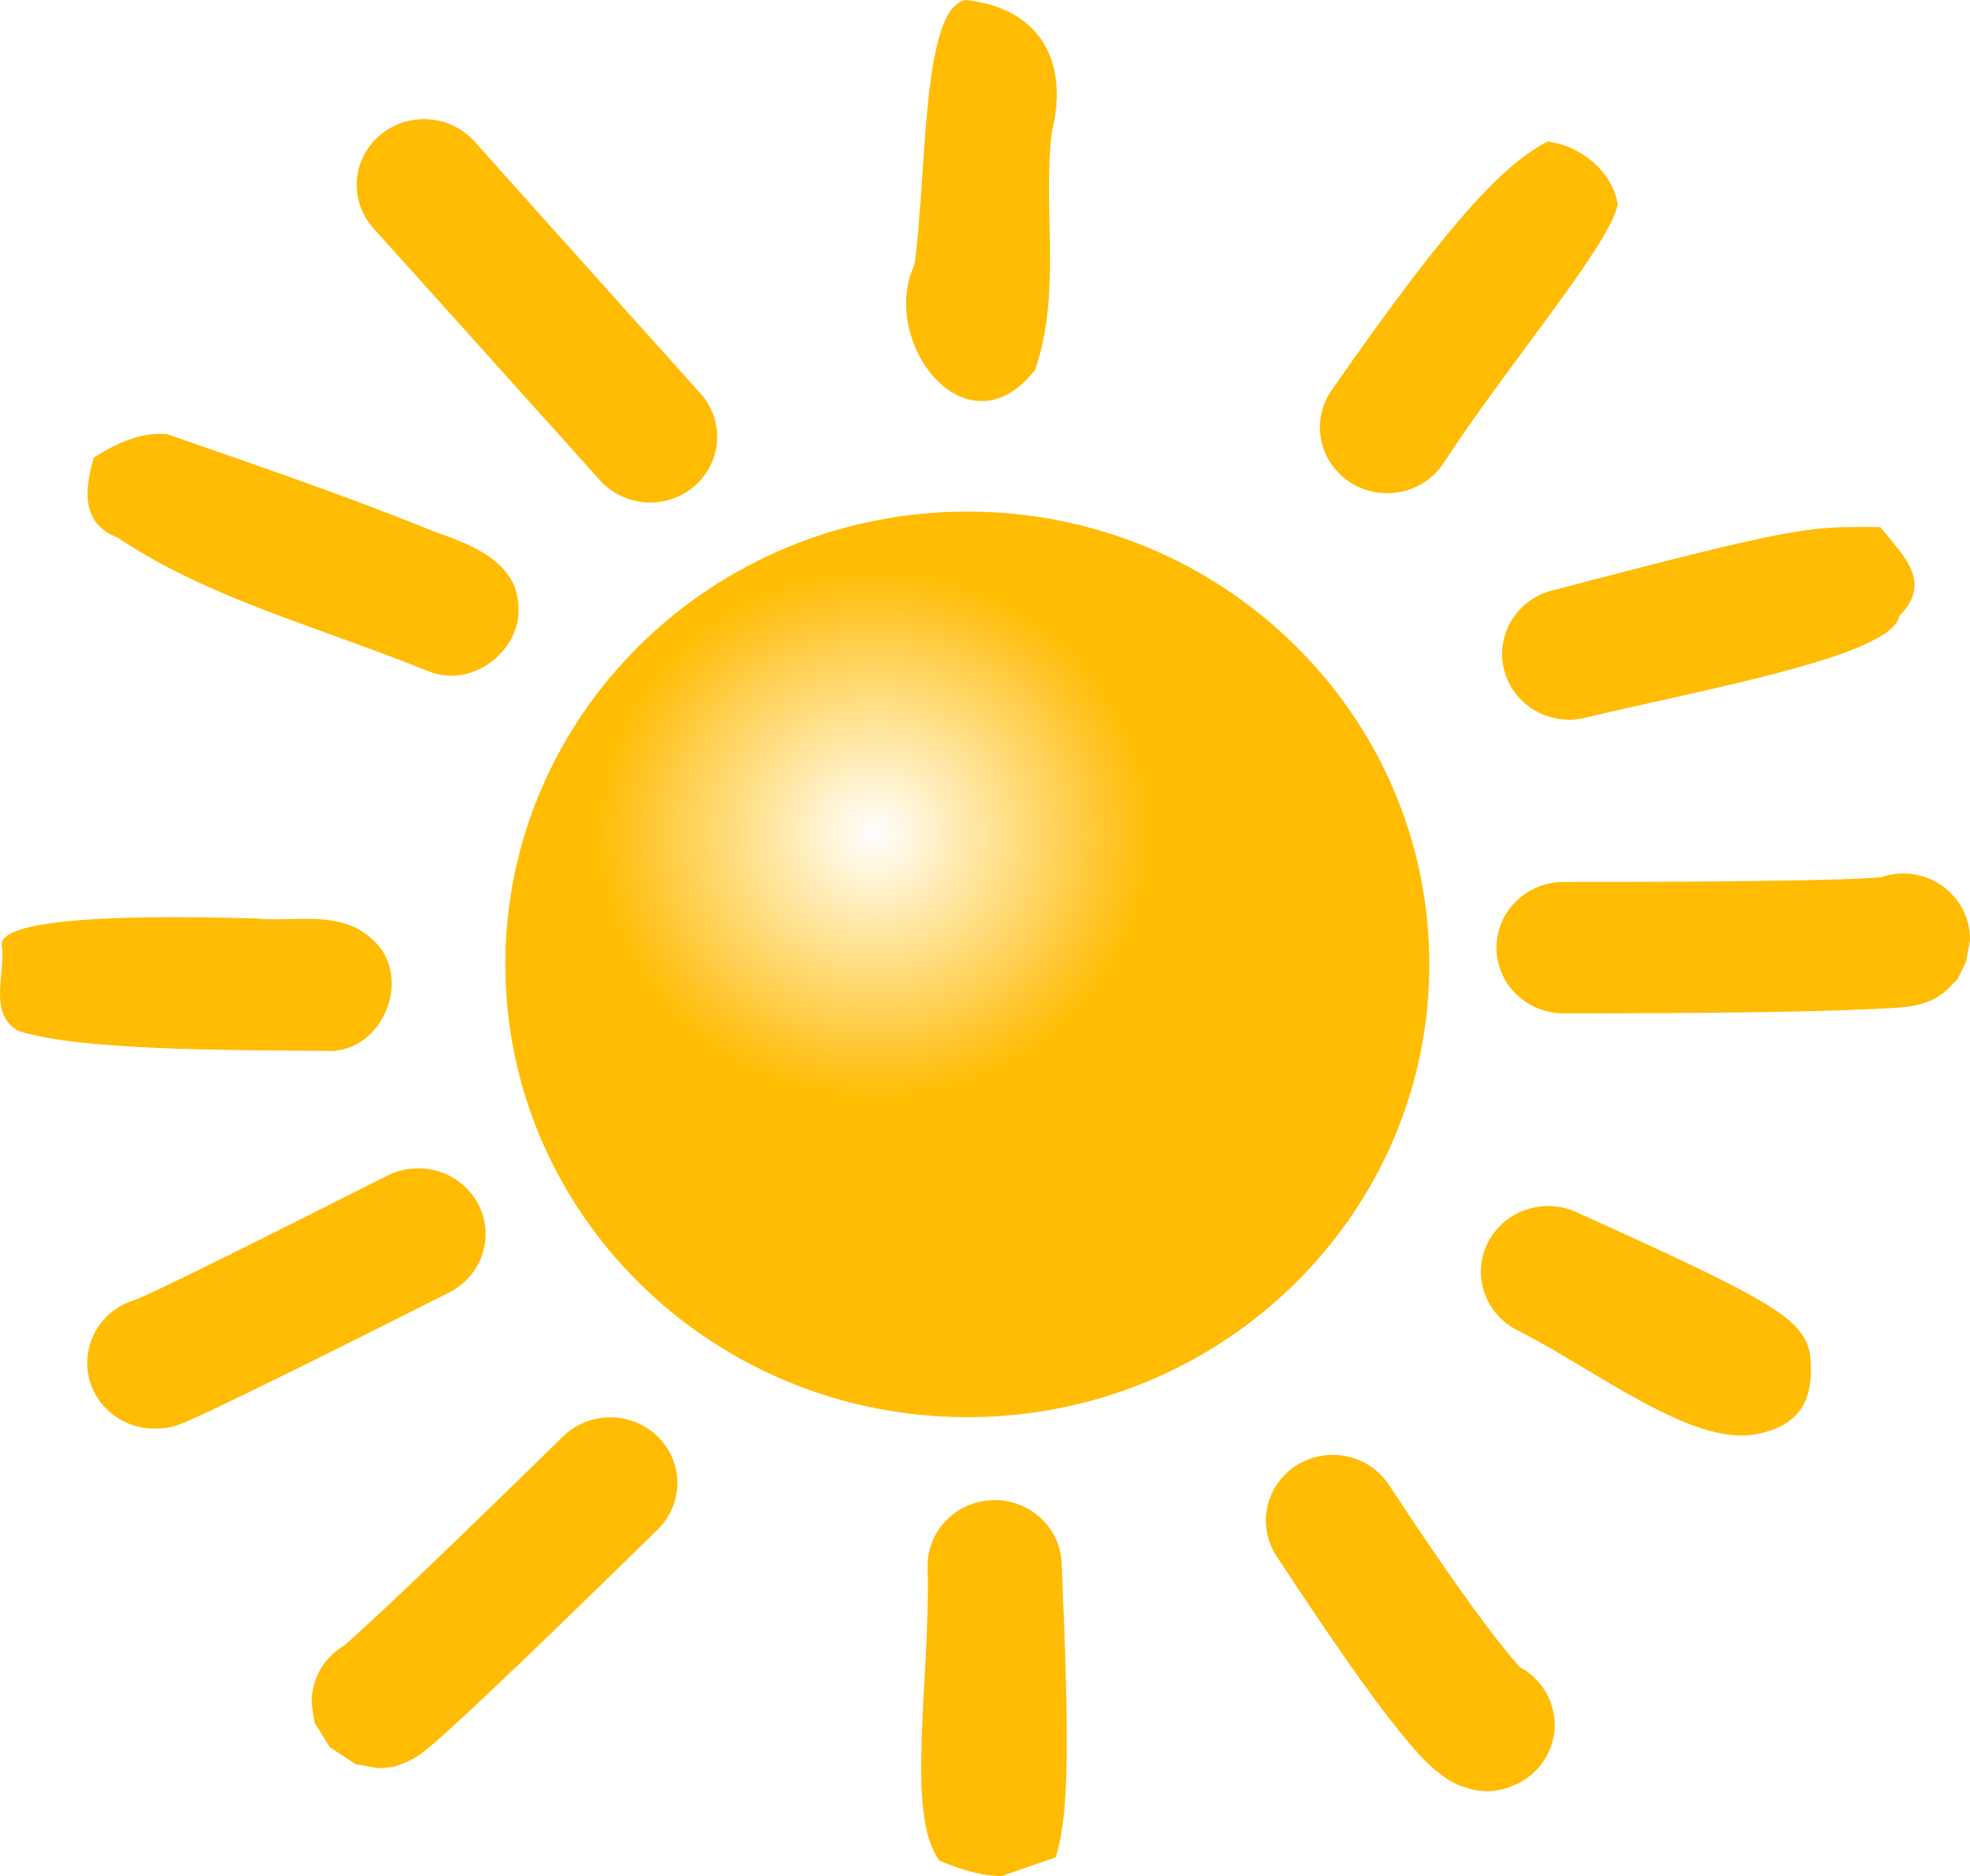 Sun weather clipart clip black and white Clipart - Weather Symbols: Sun clip black and white